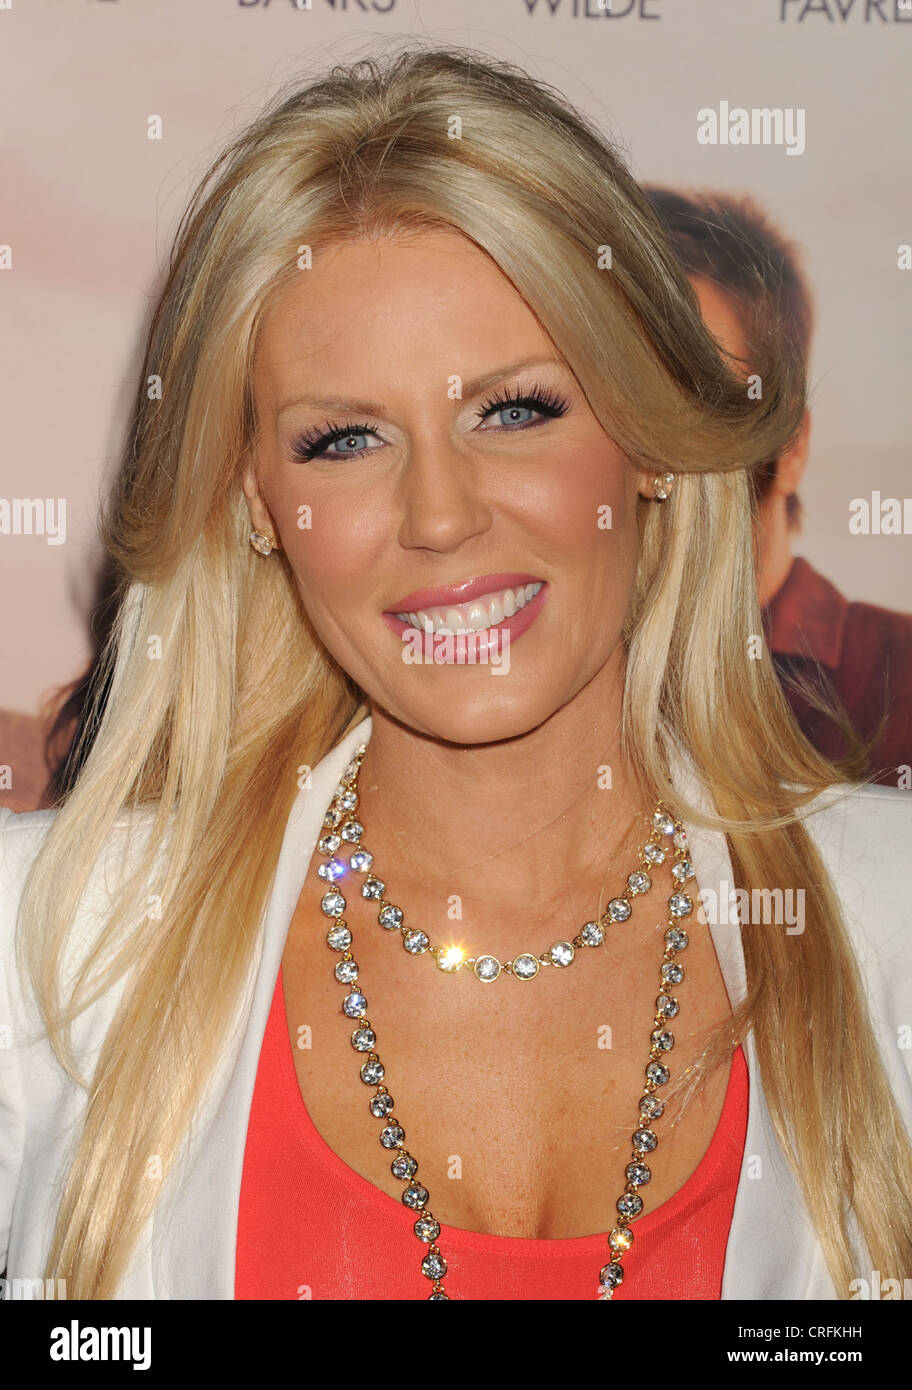 Gretchen Rossi Stock Photos Gretchen Rossi Stock Images Alamy